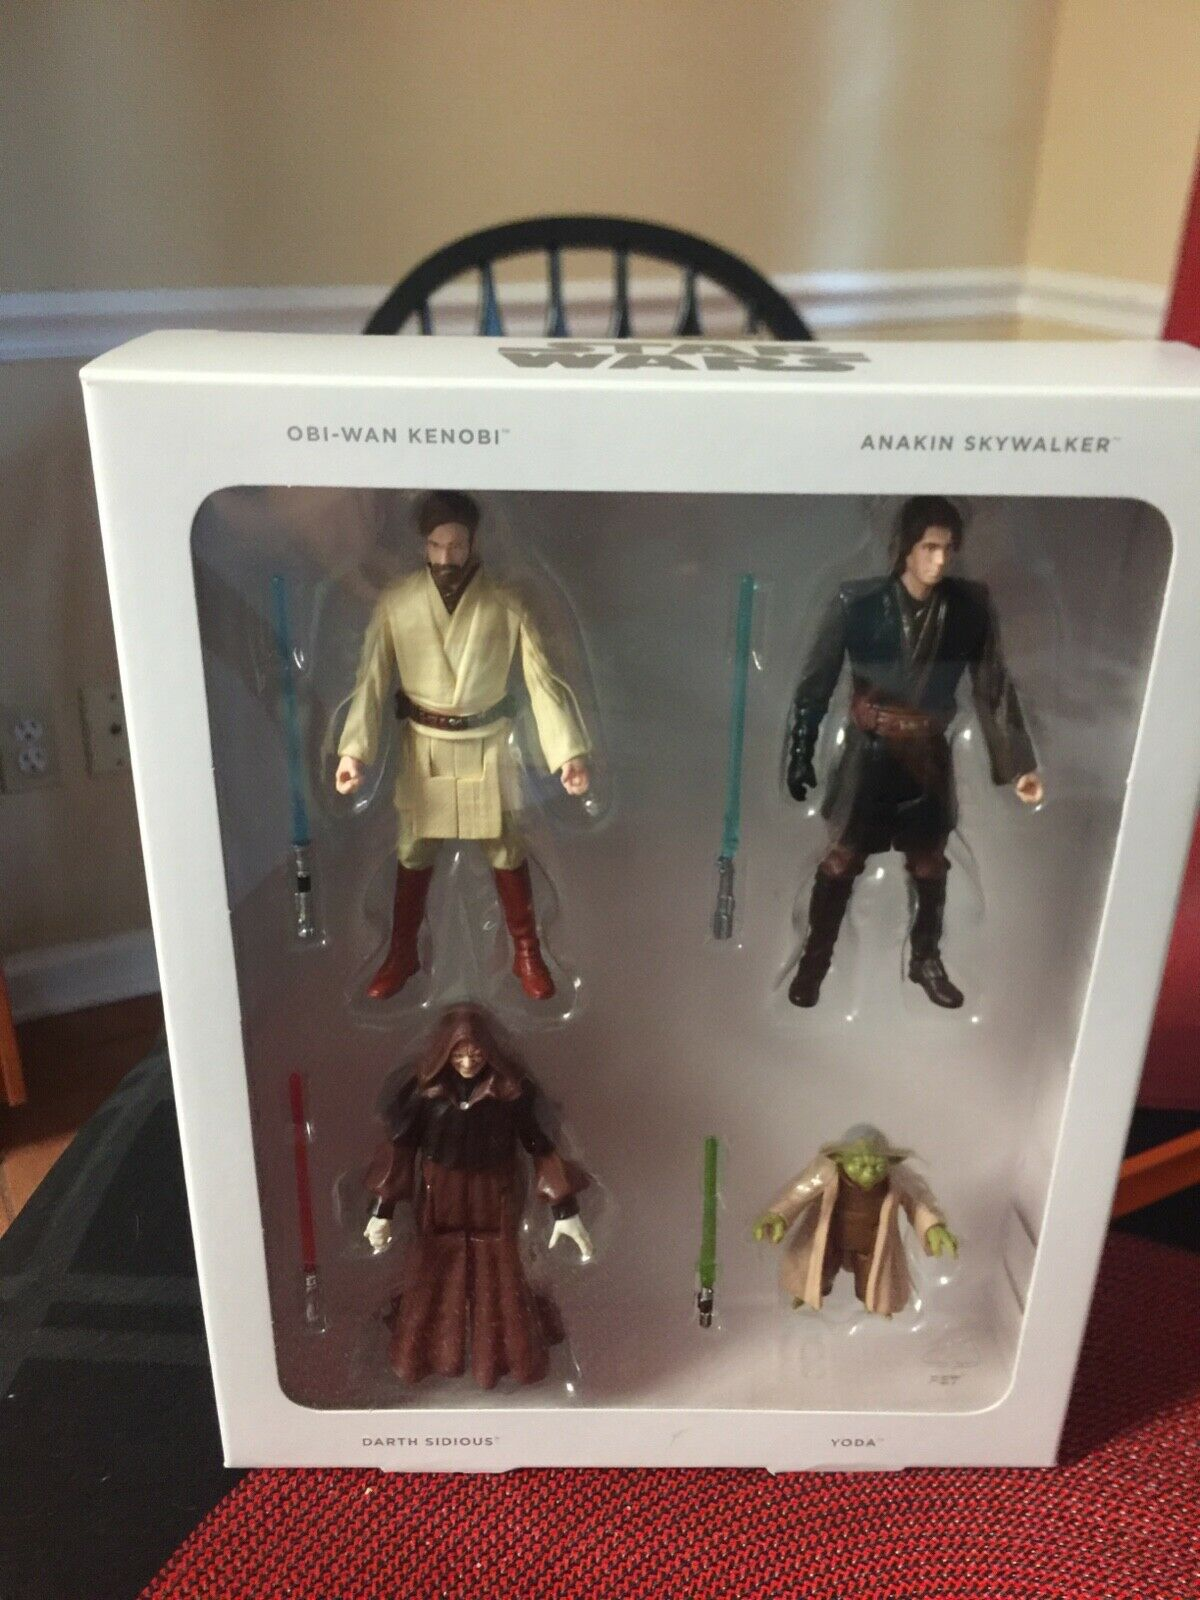 Star Wars Episode III Commemorative Collection Figures - NEW, in box